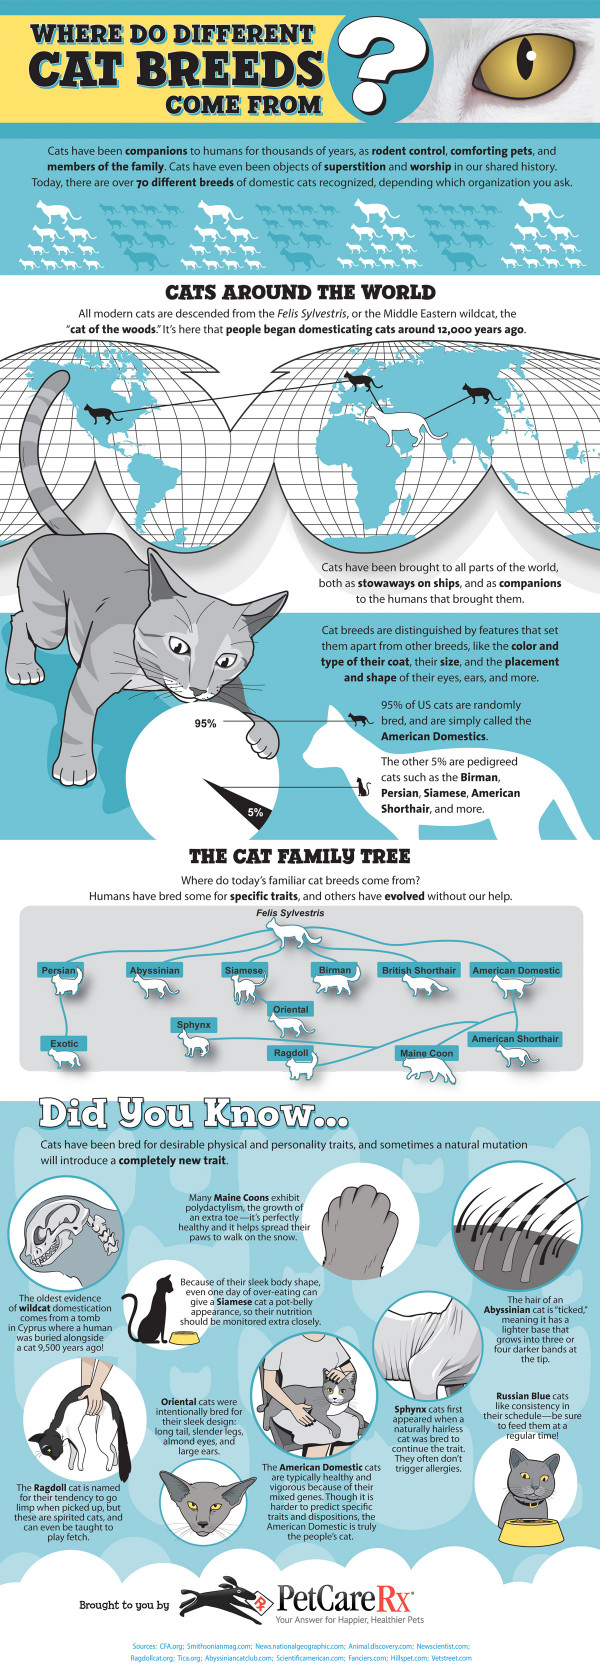 Where Do Different Cat Breeds Come From?